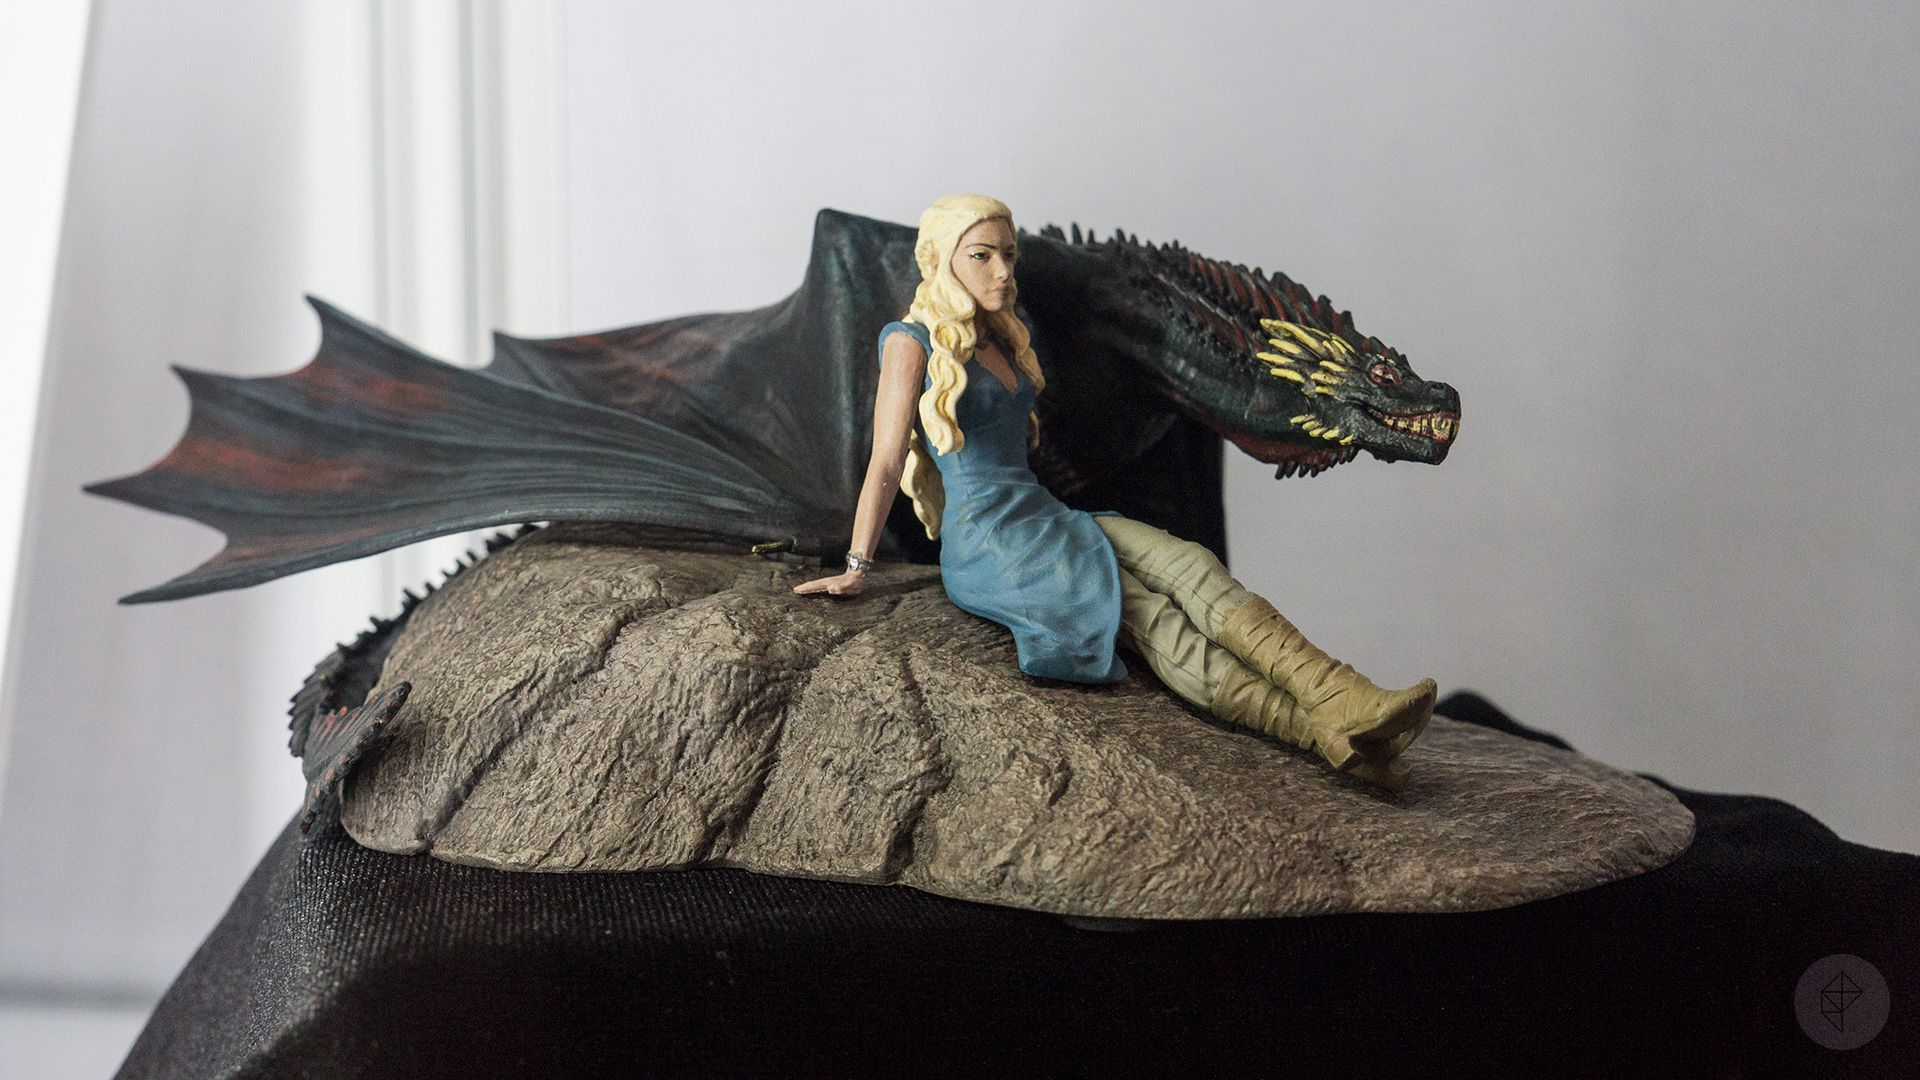 Game Of Thrones Toys : Dark horse s game of thrones figures are a highlight